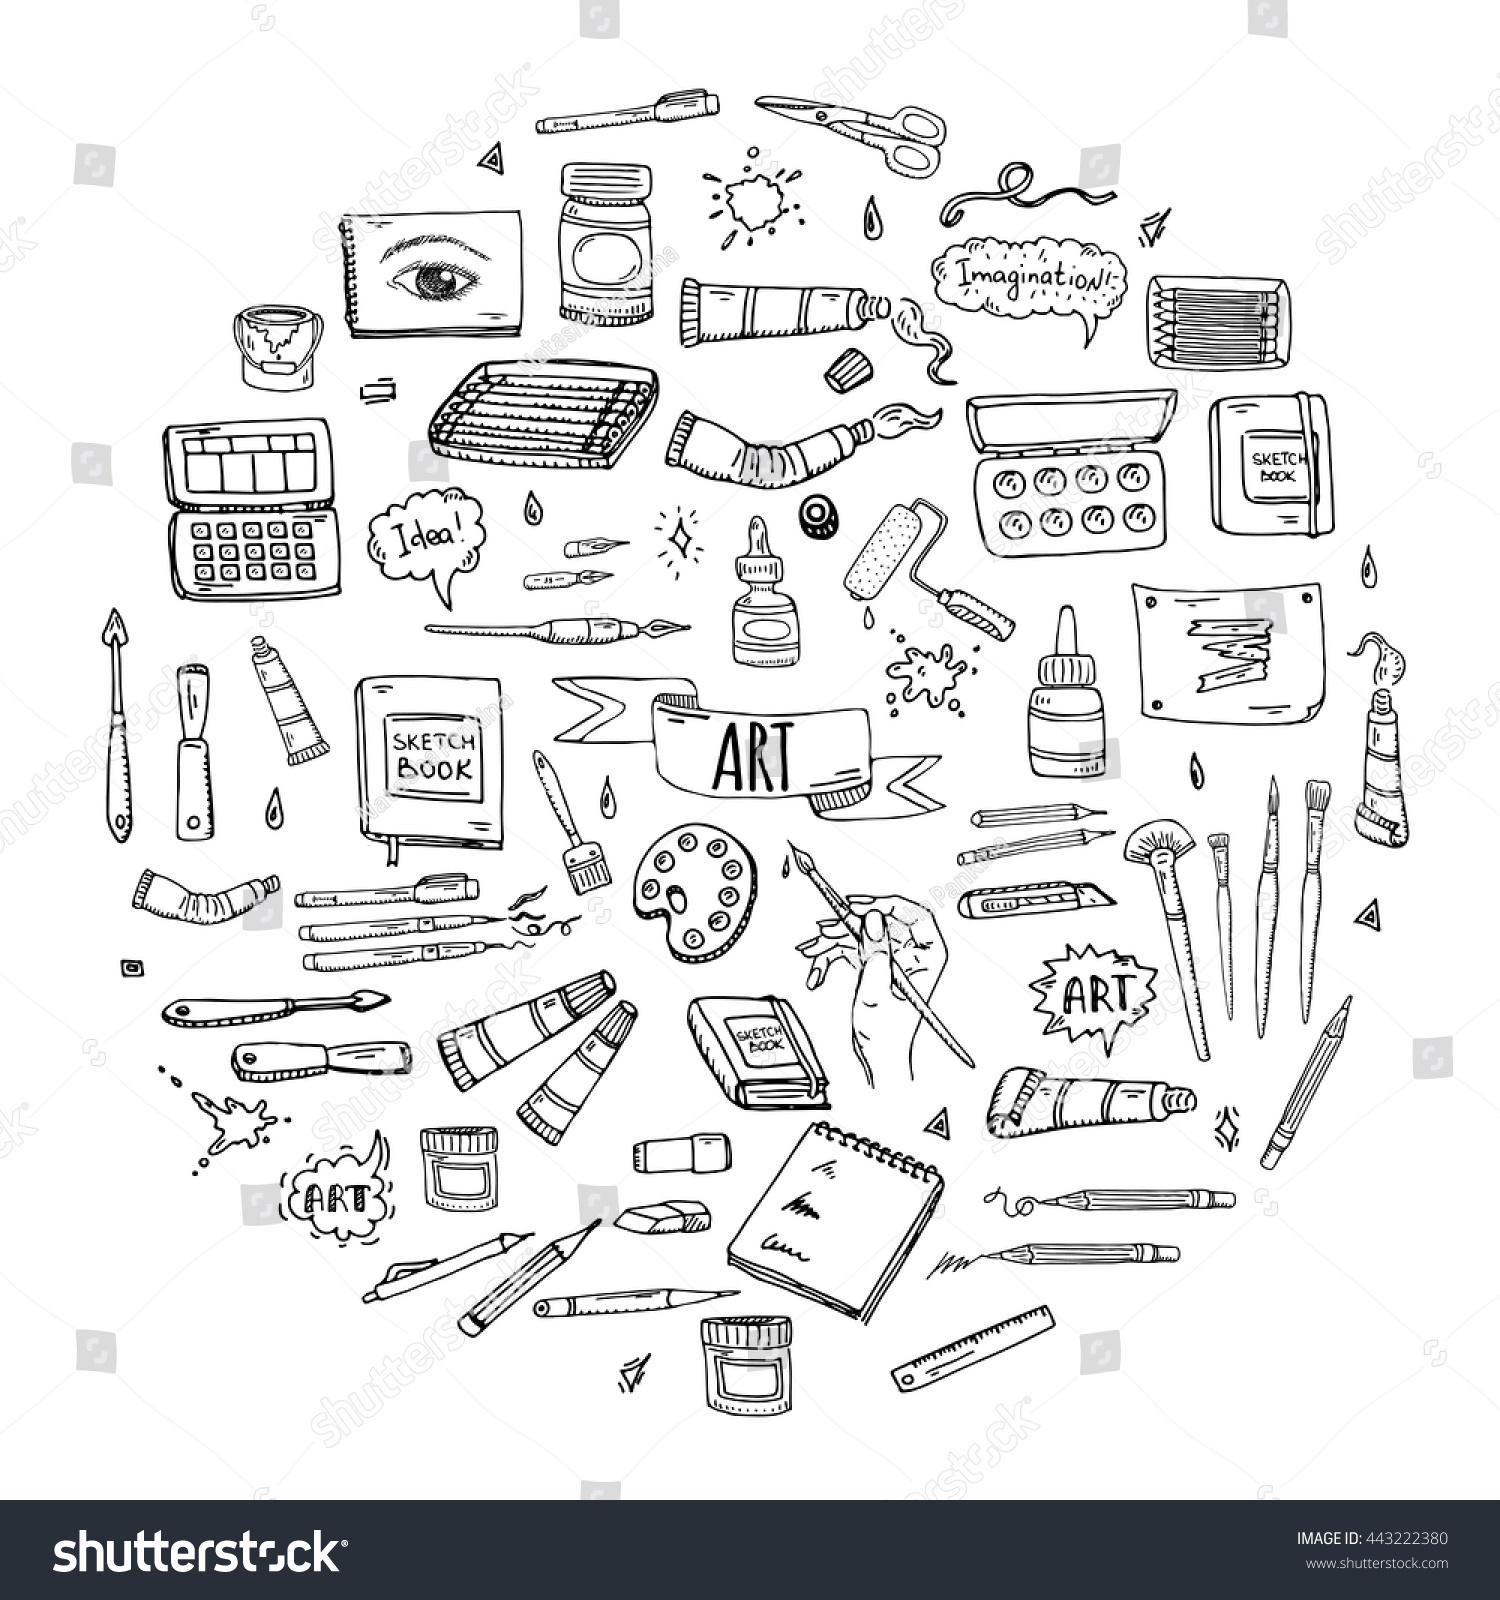 Royalty Free Hand Drawn Doodle Art And Craft Tools 443222380 Stock